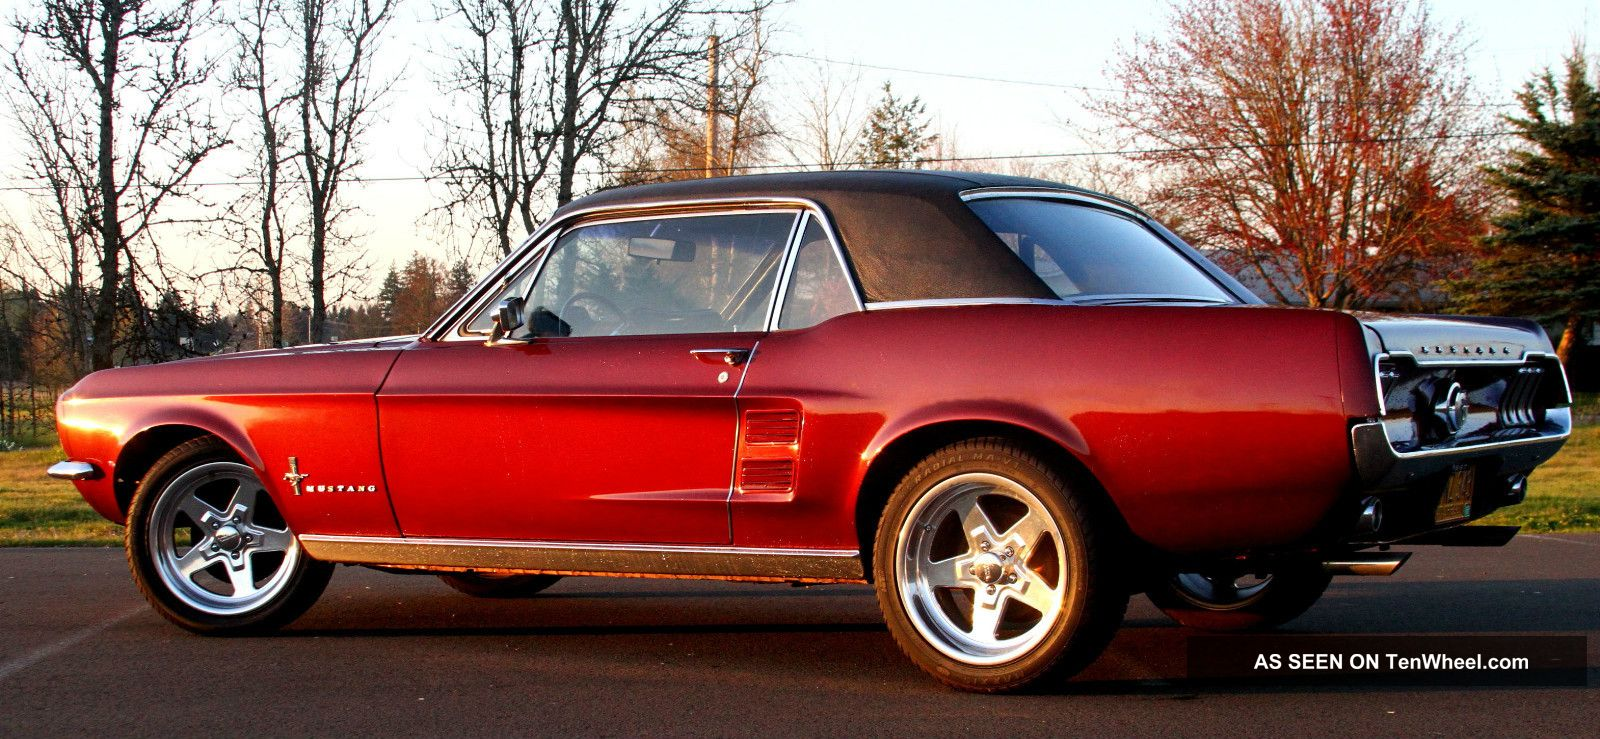 1967 Ford Mustang Coupe 289 V8 Restomod C4 Great Pony